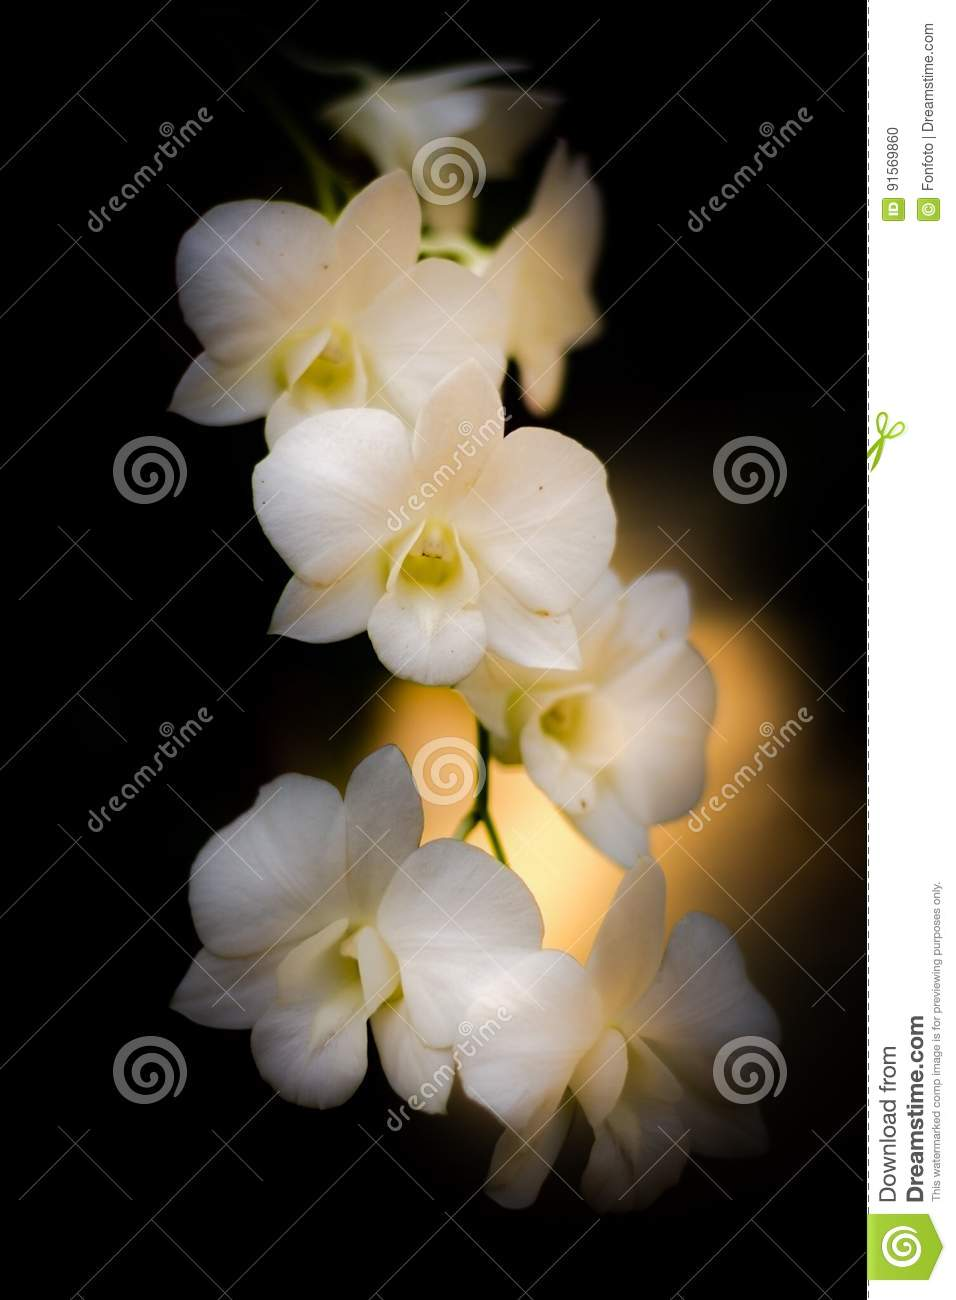 White orchid stock photo image of elegance associate 91569860 download comp mightylinksfo